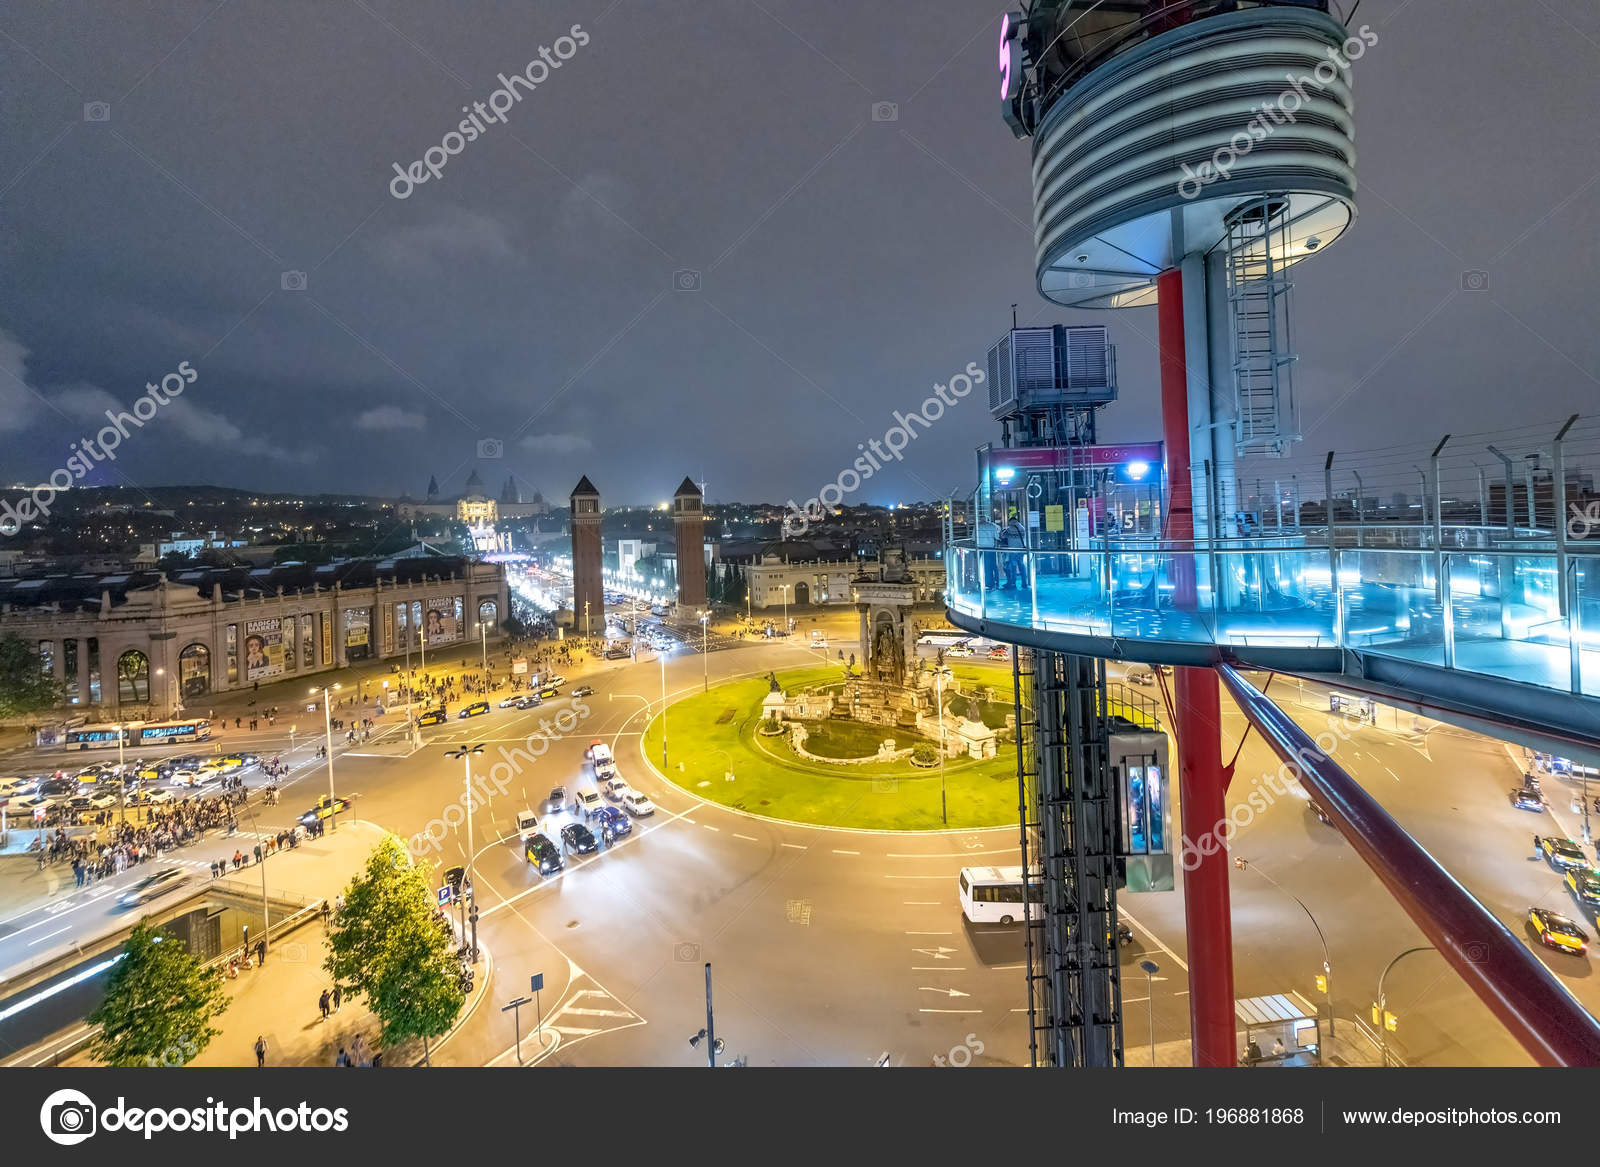 Barcelona May 2018 Night Aerial View Spain Square Arena